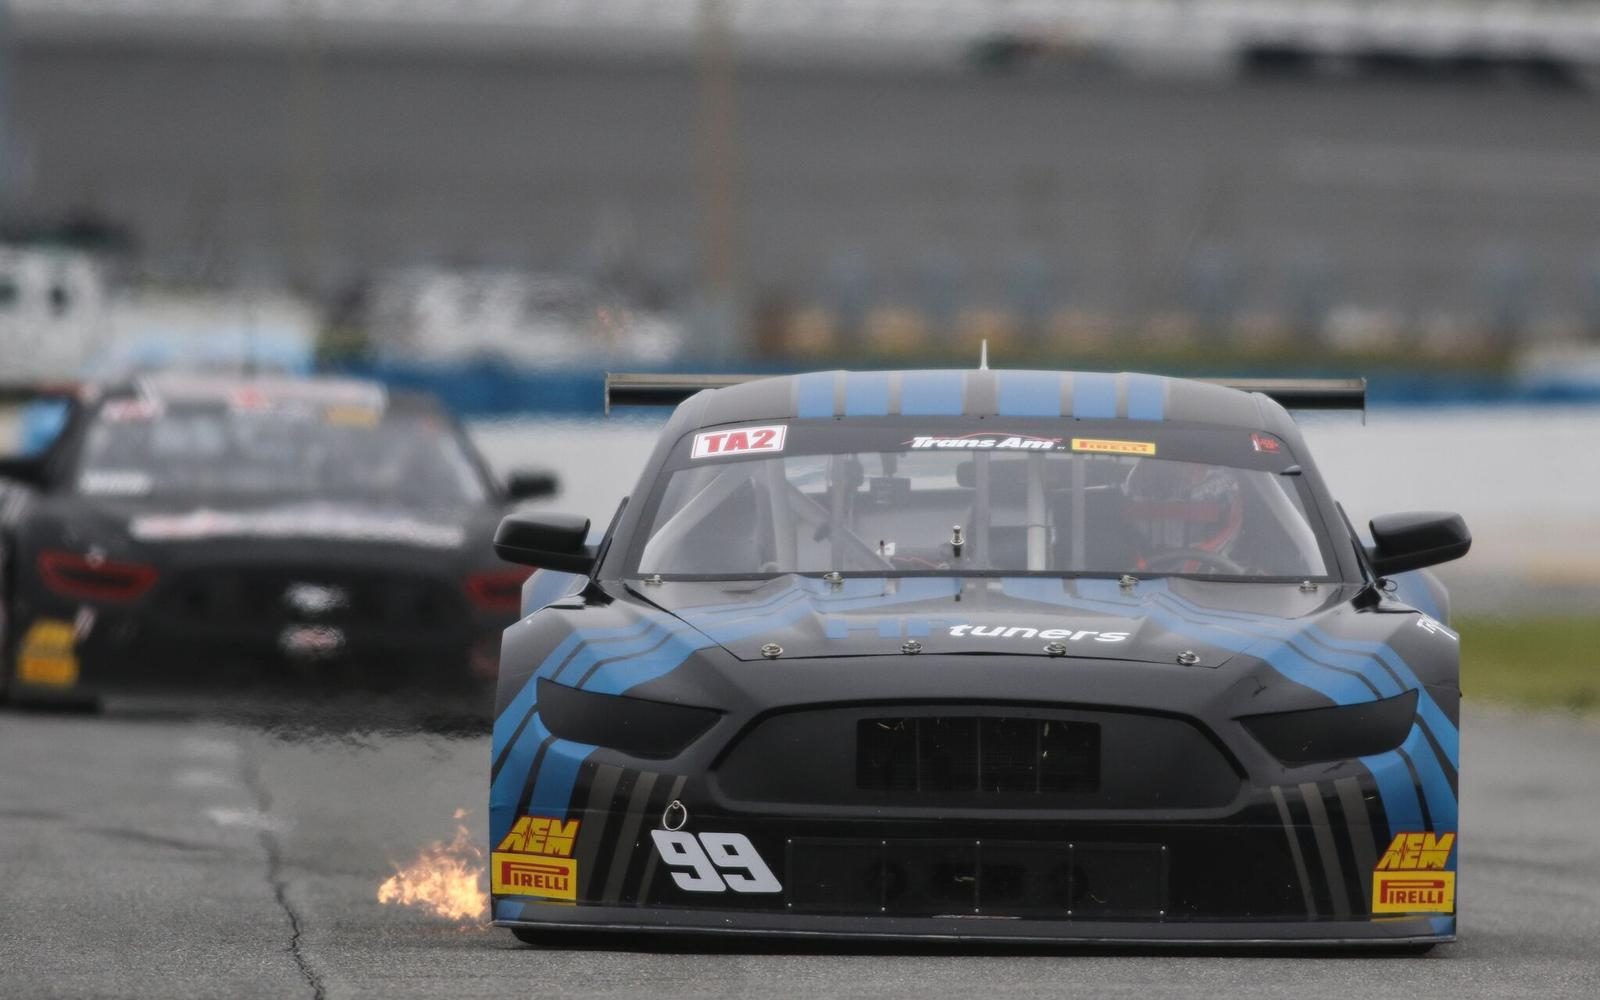 Merrill Holds onto Victory after Grueling Trans Am TA2® Finale at Daytona